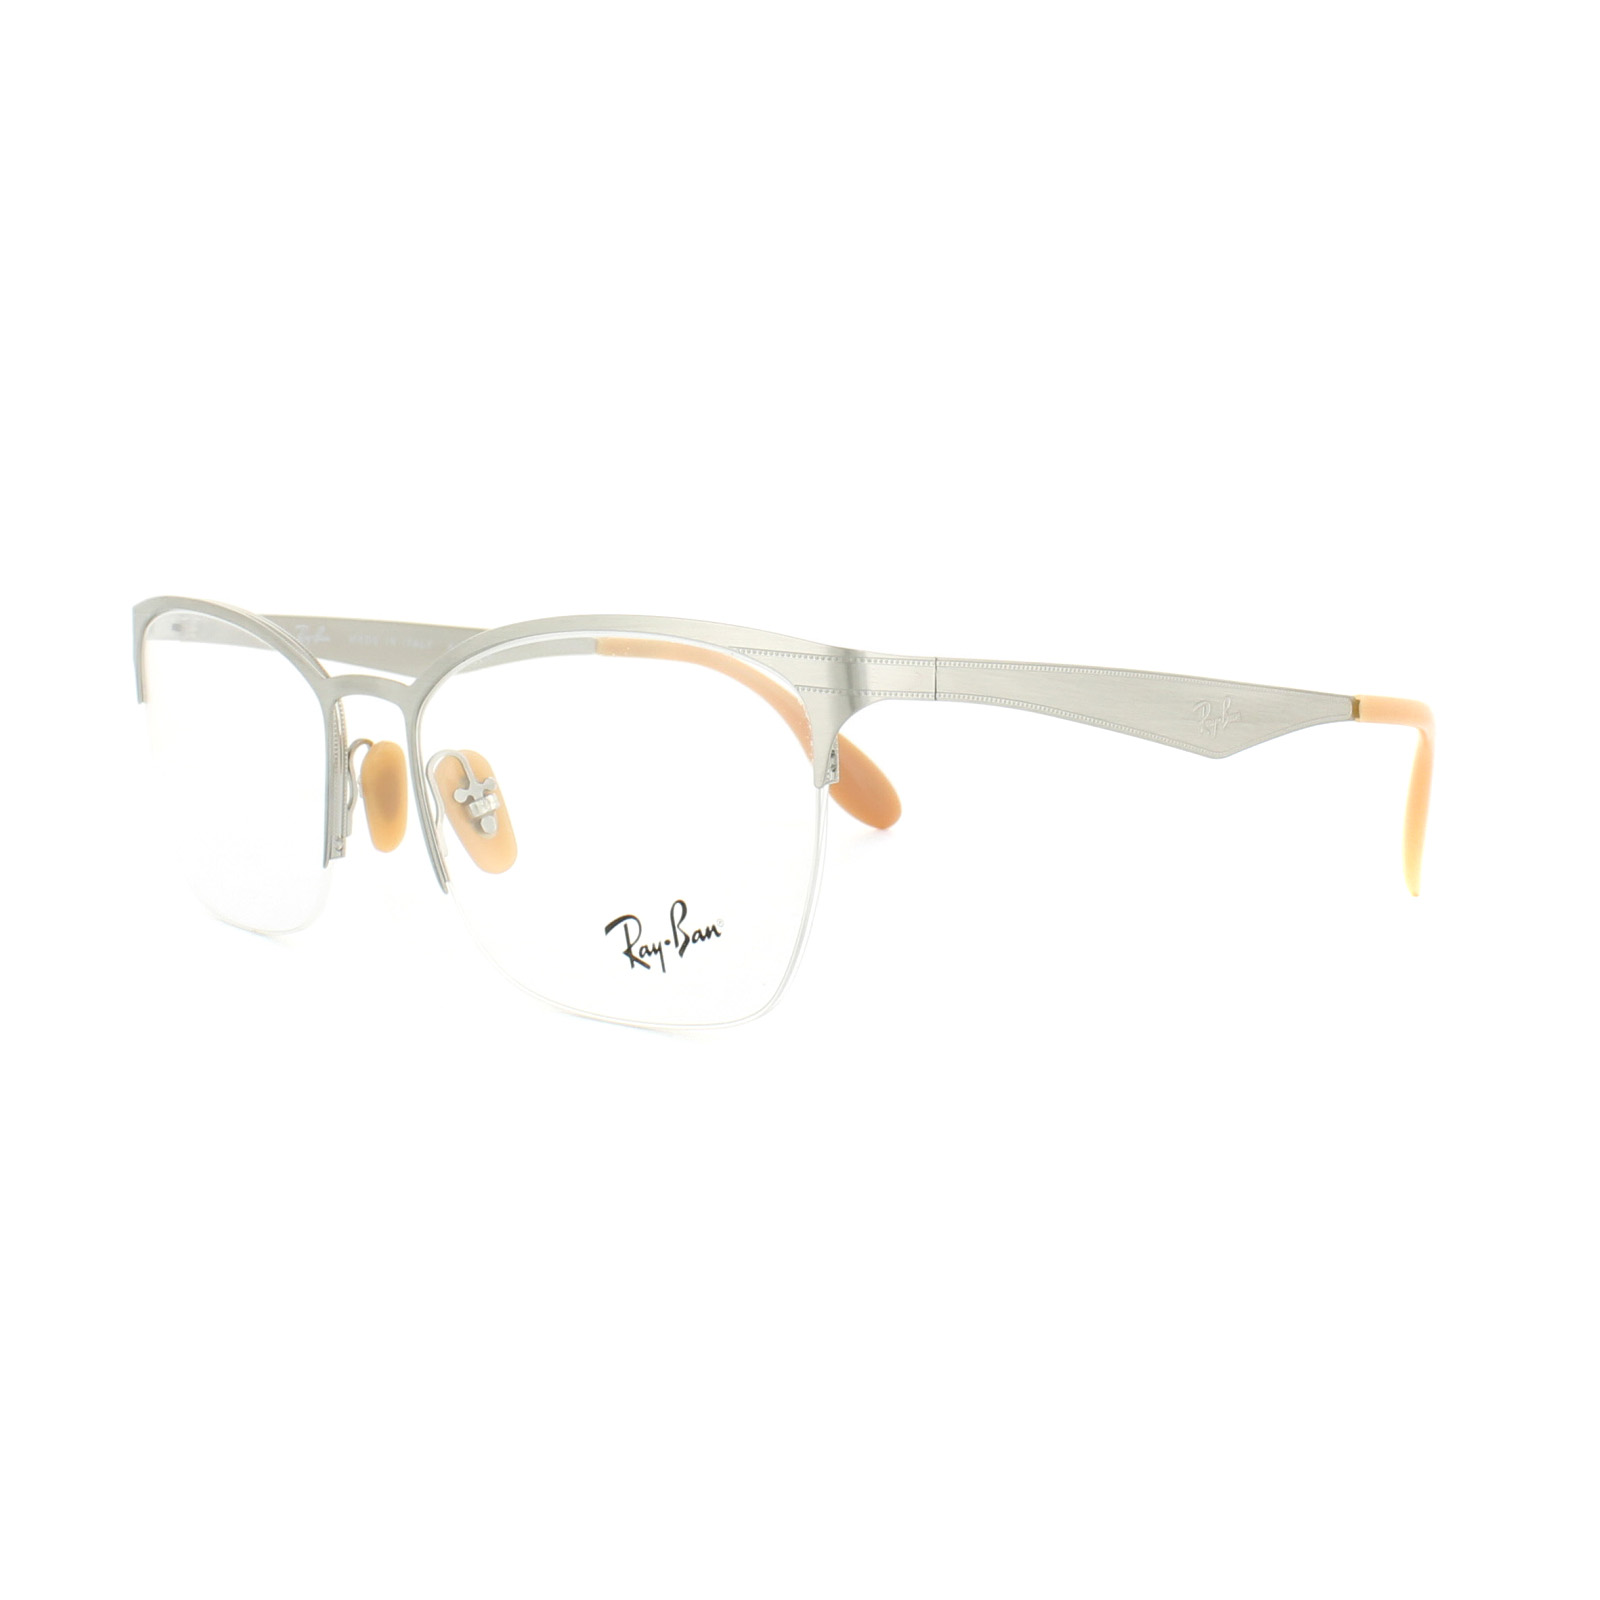 6a948d50c65 Sentinel Ray-Ban Glasses Frames RX 6345 2595 Silver Brushed Womens 54mm